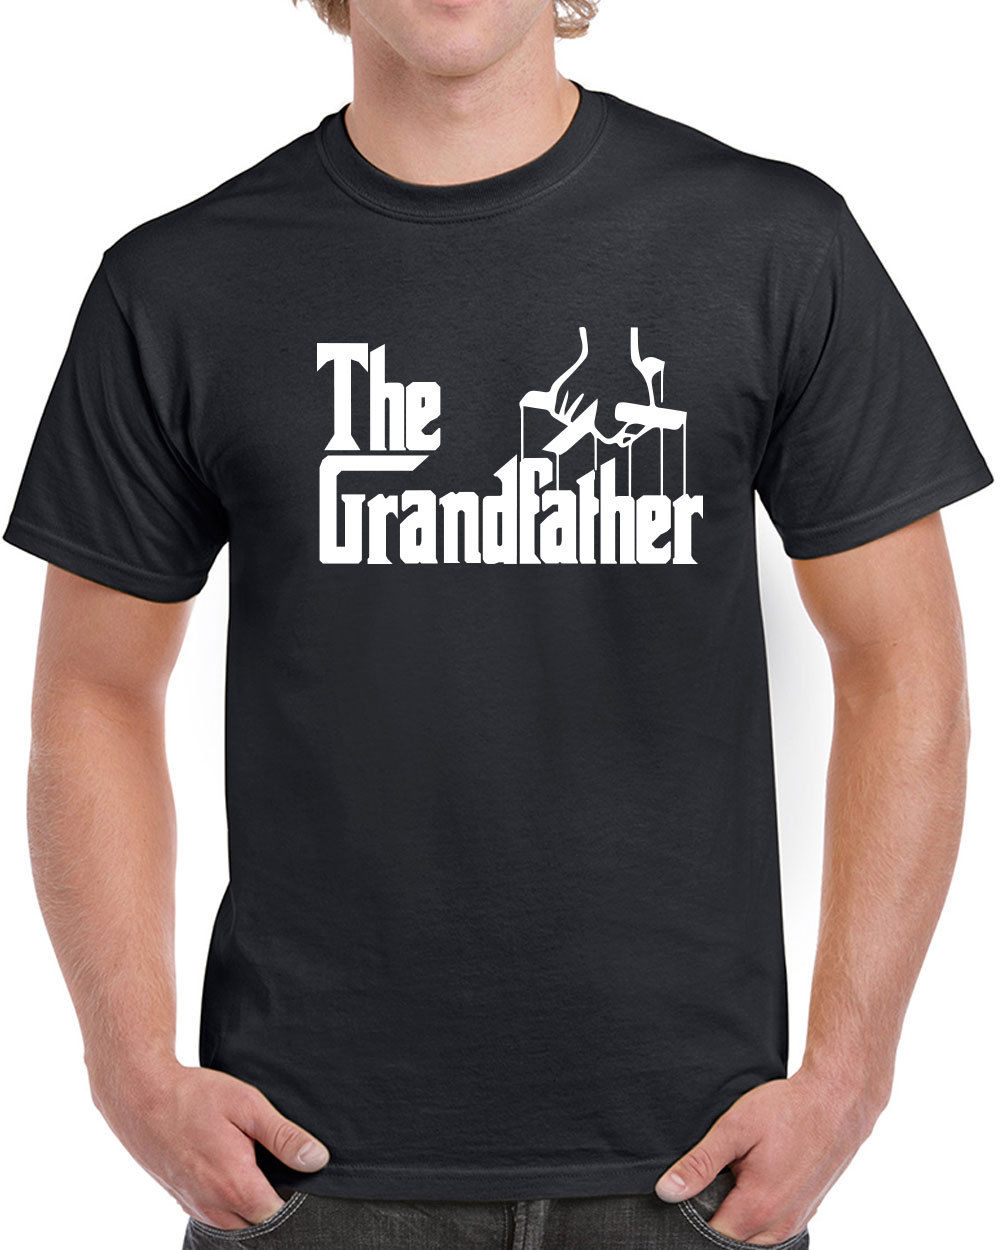 396 The Grandfather mens T-shirt funny gift fathers day grandpa present vintage